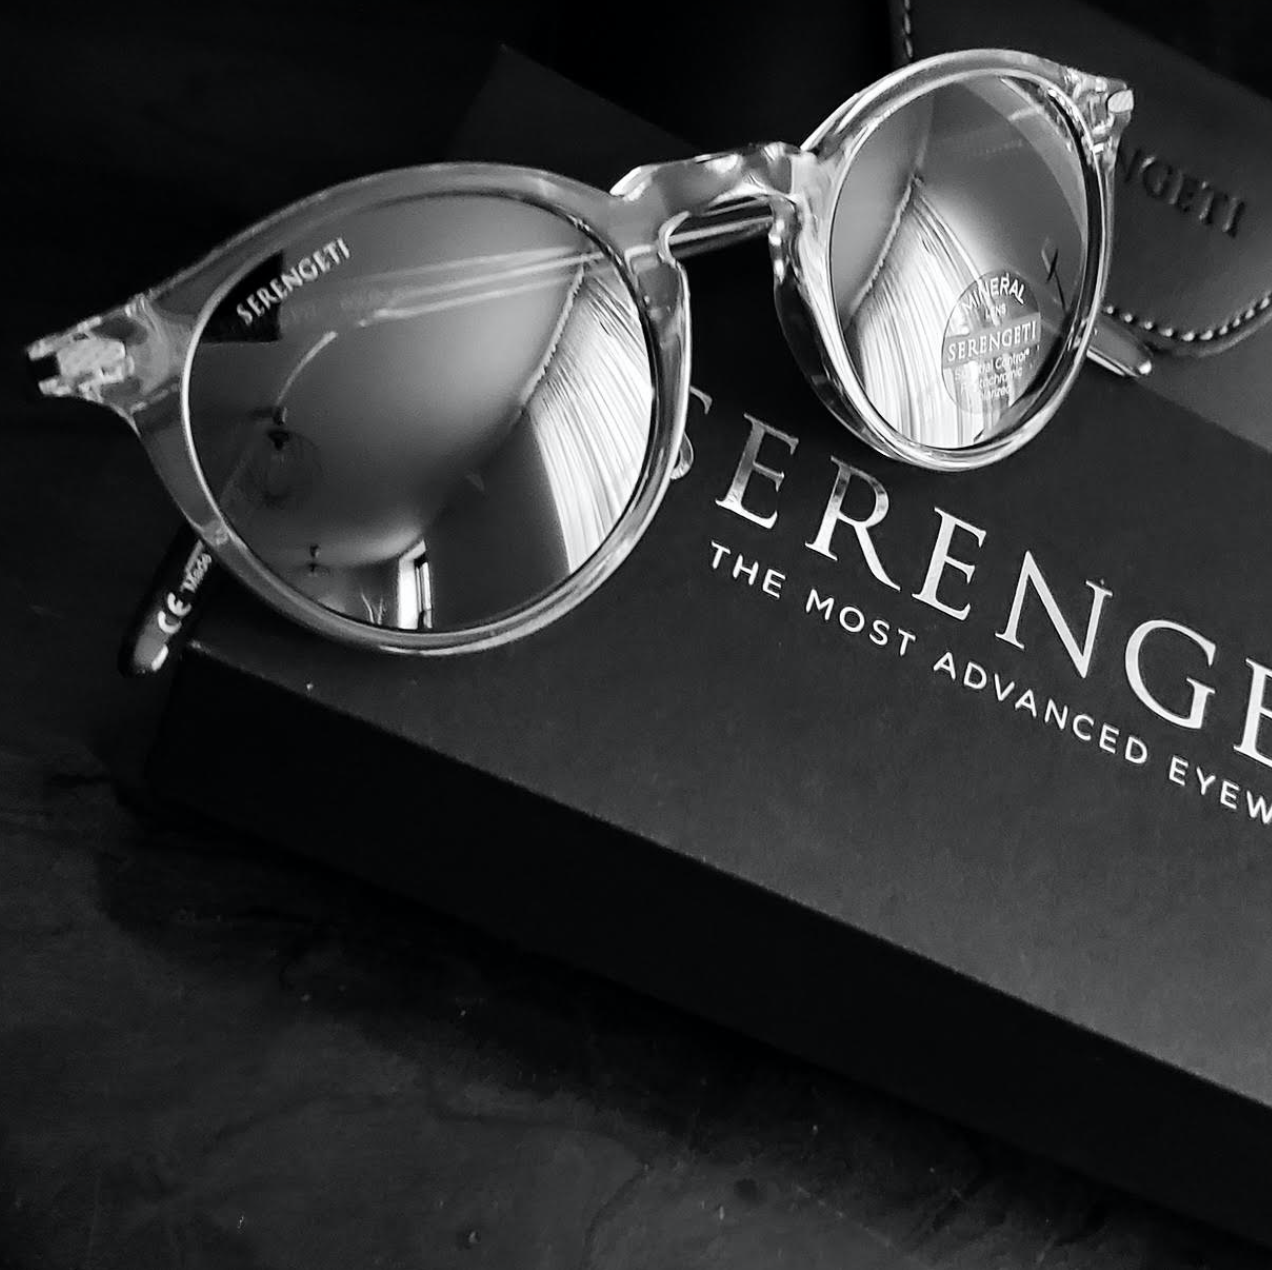 For over 45 years. Serengeti® has been committed to developing the world's most advanced sunglass lens technology.